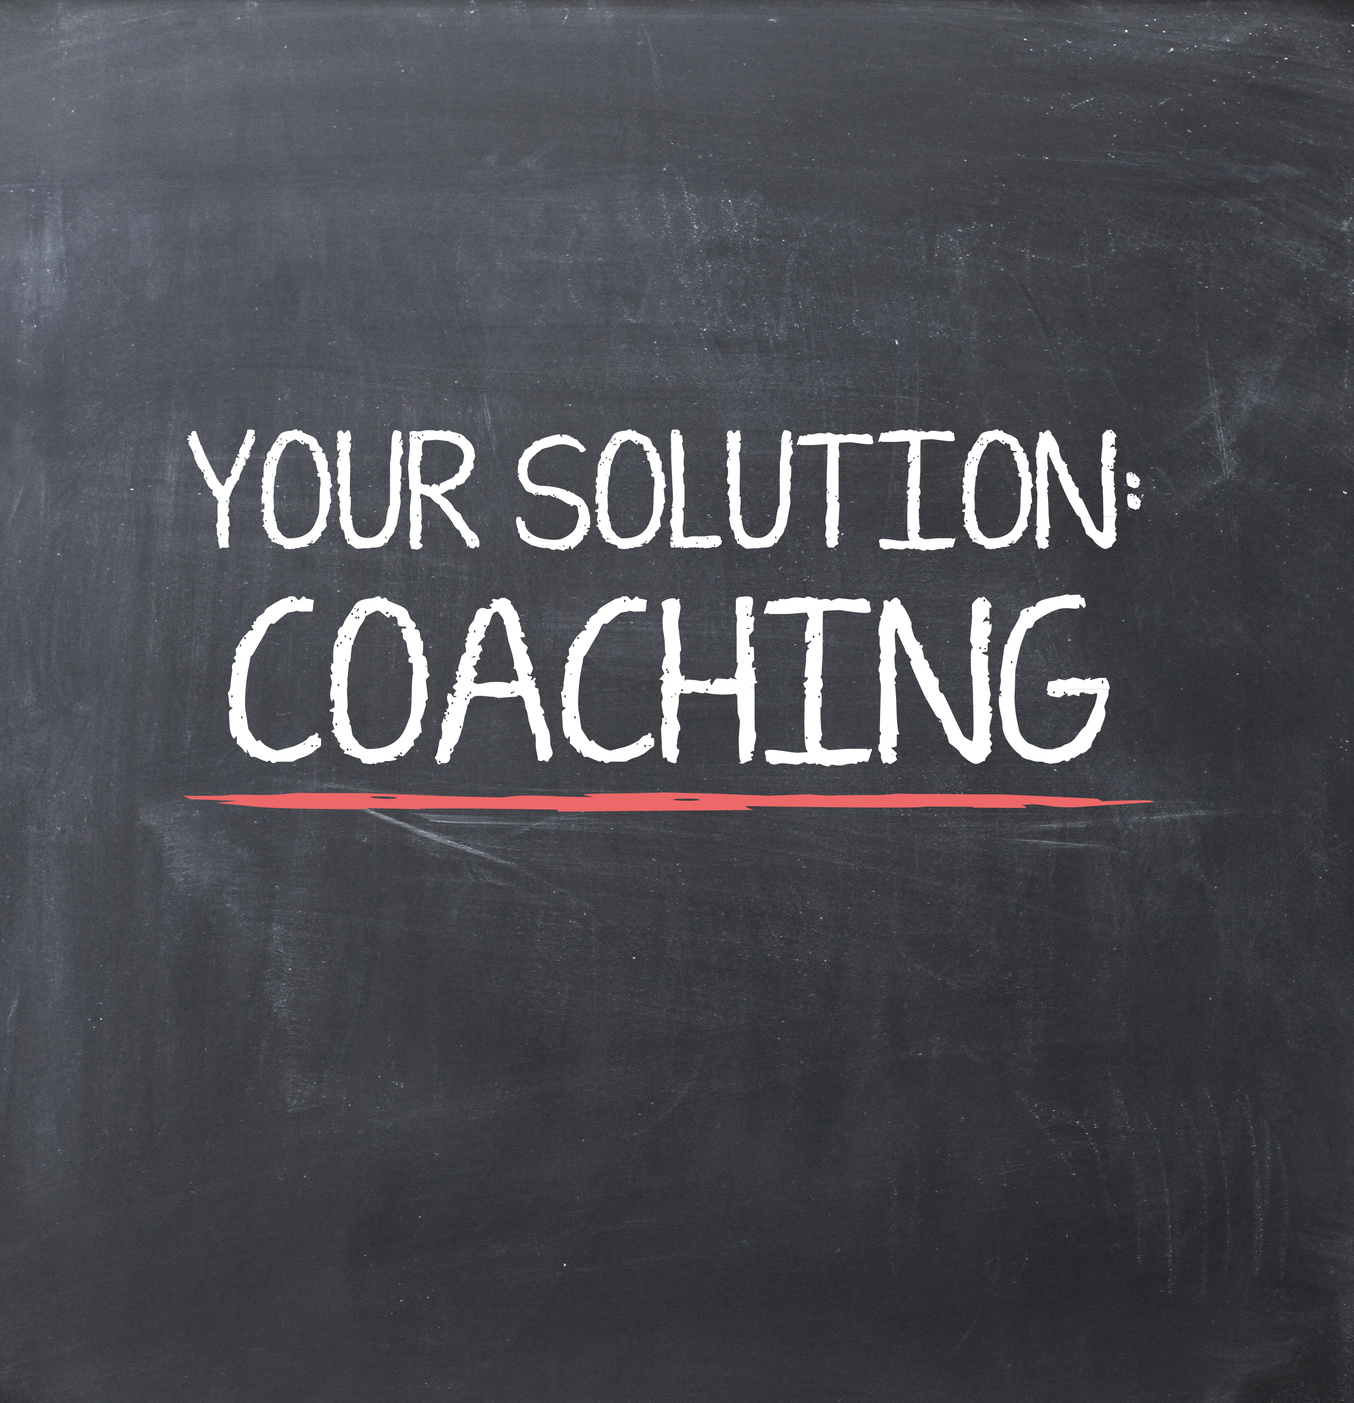 4 Ways Coaching Your Sellers Improves Sales Activities